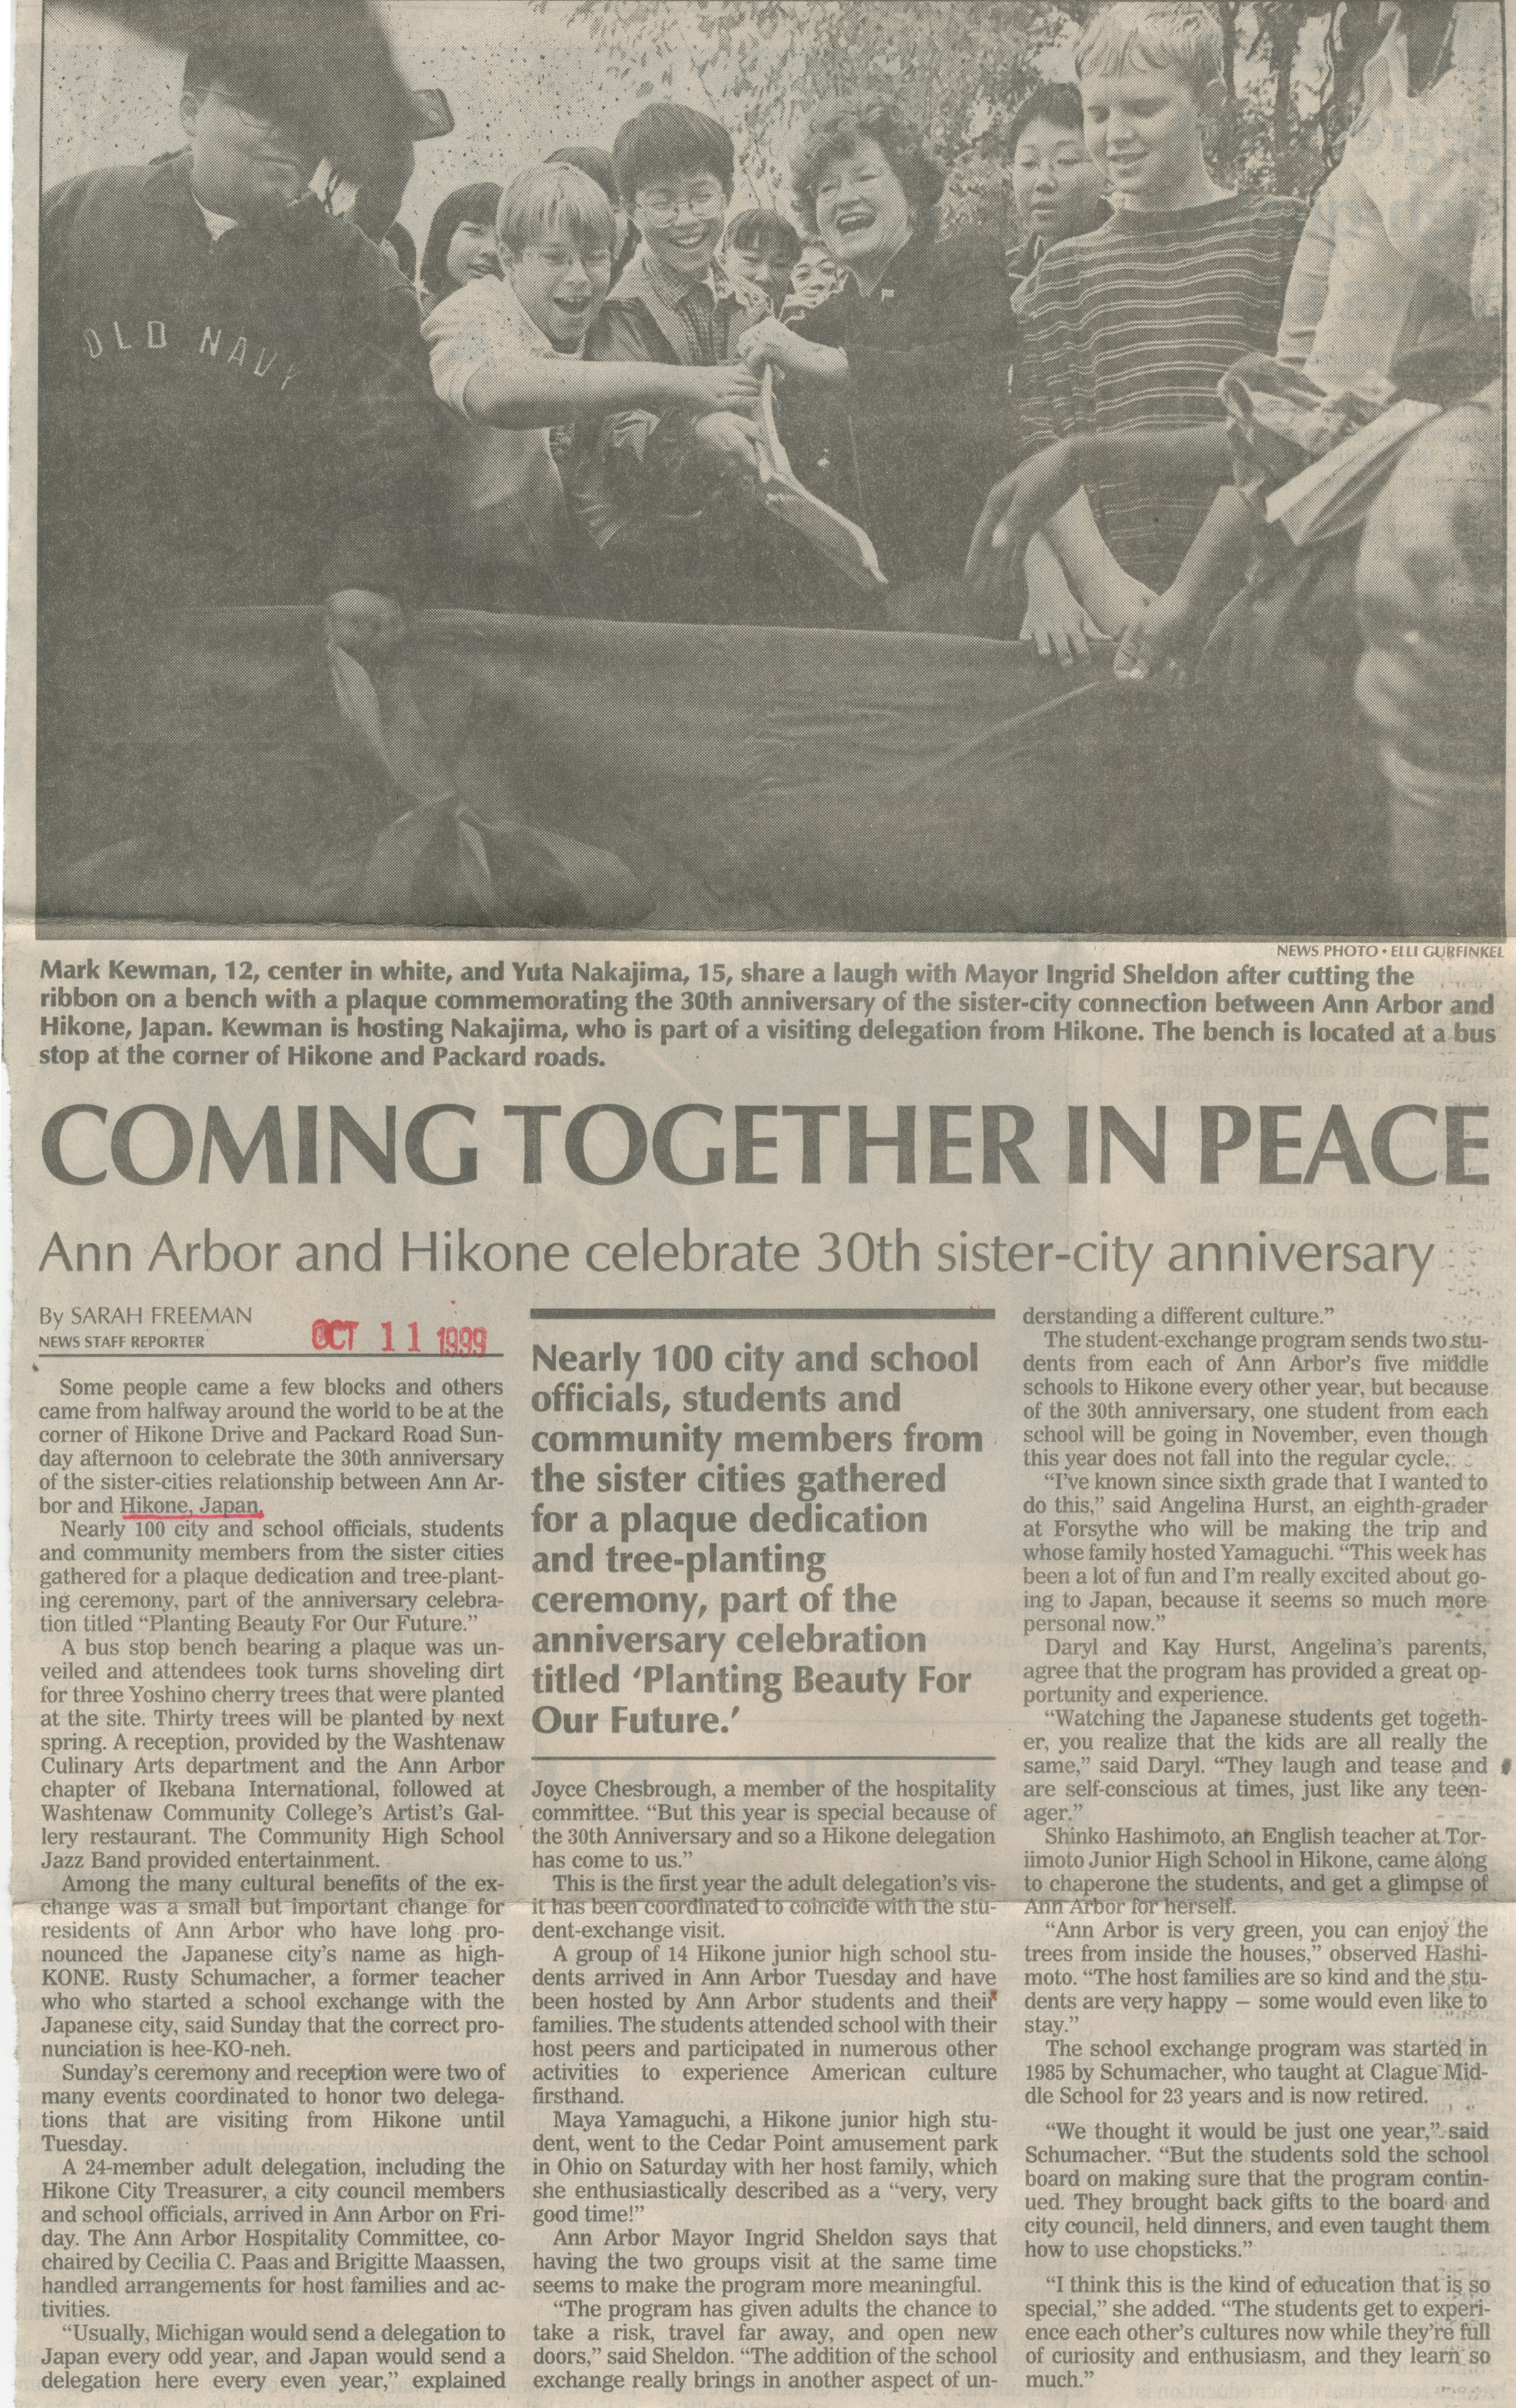 Coming Together In Peace - Ann Arbor and Hikone Celebrate 30th Sister-City Anniversary image